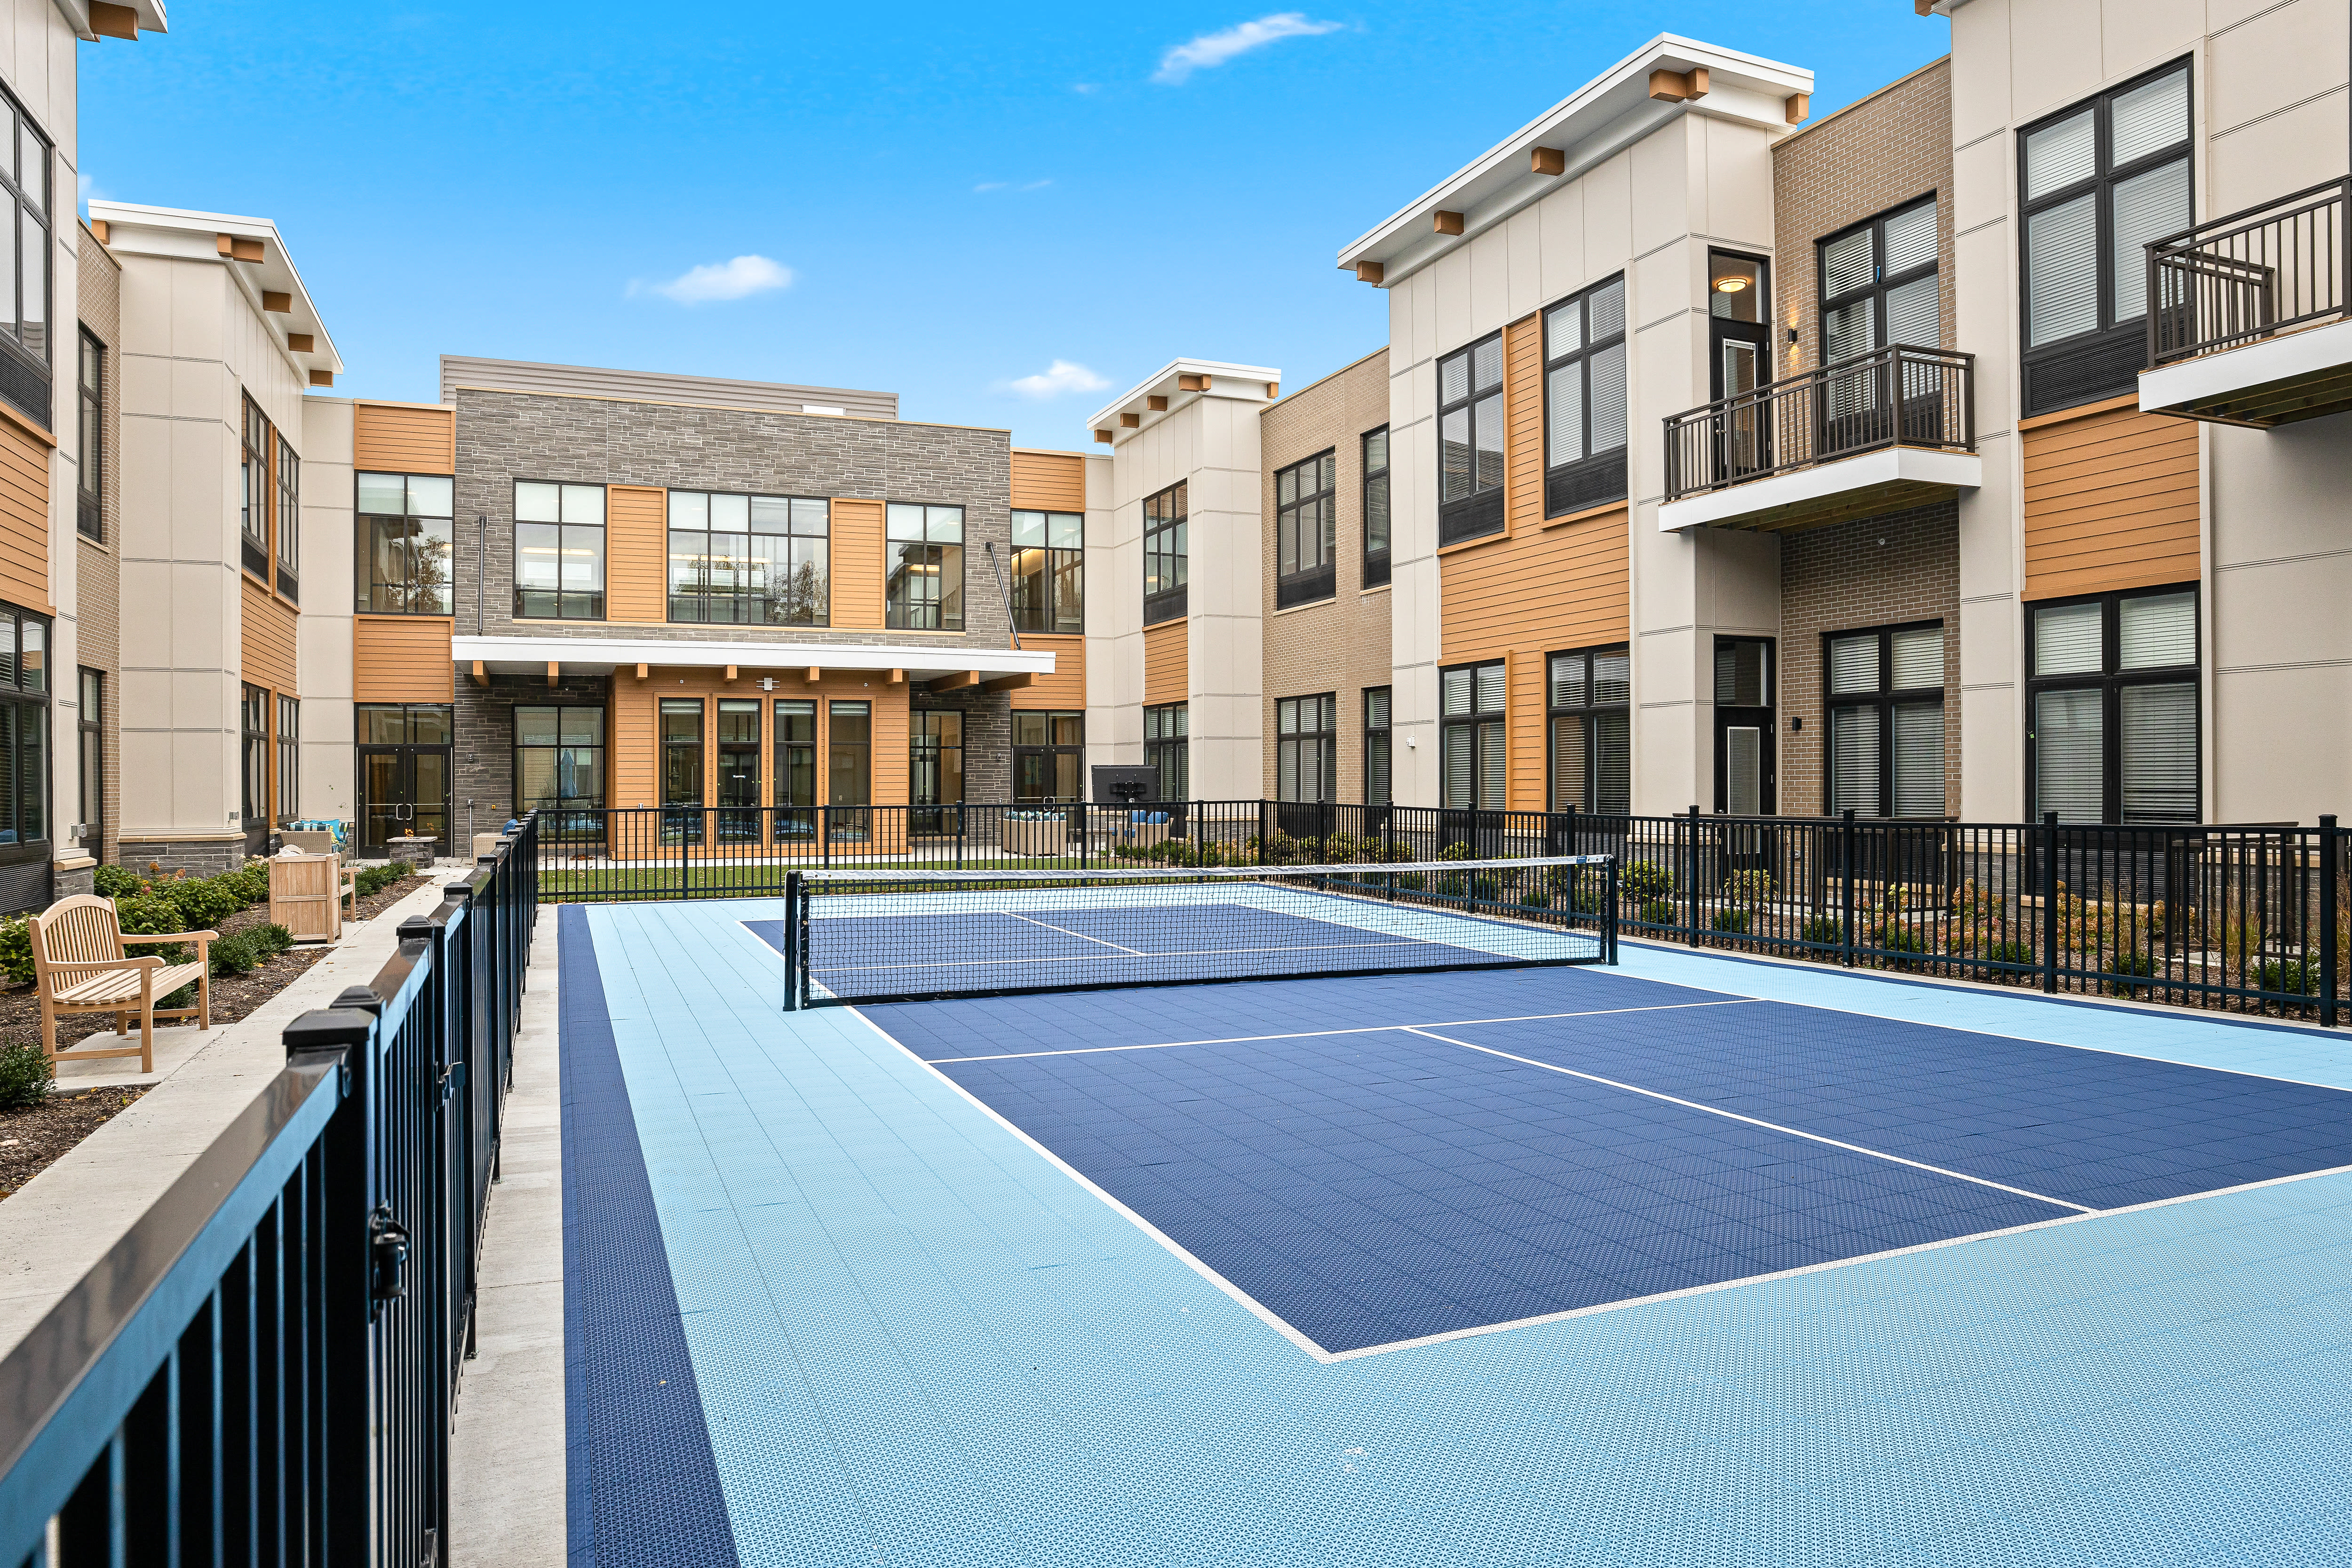 Outdoor Tennis Court Anthology of Mayfield Heights - Now Open in Mayfield Heights, Ohio